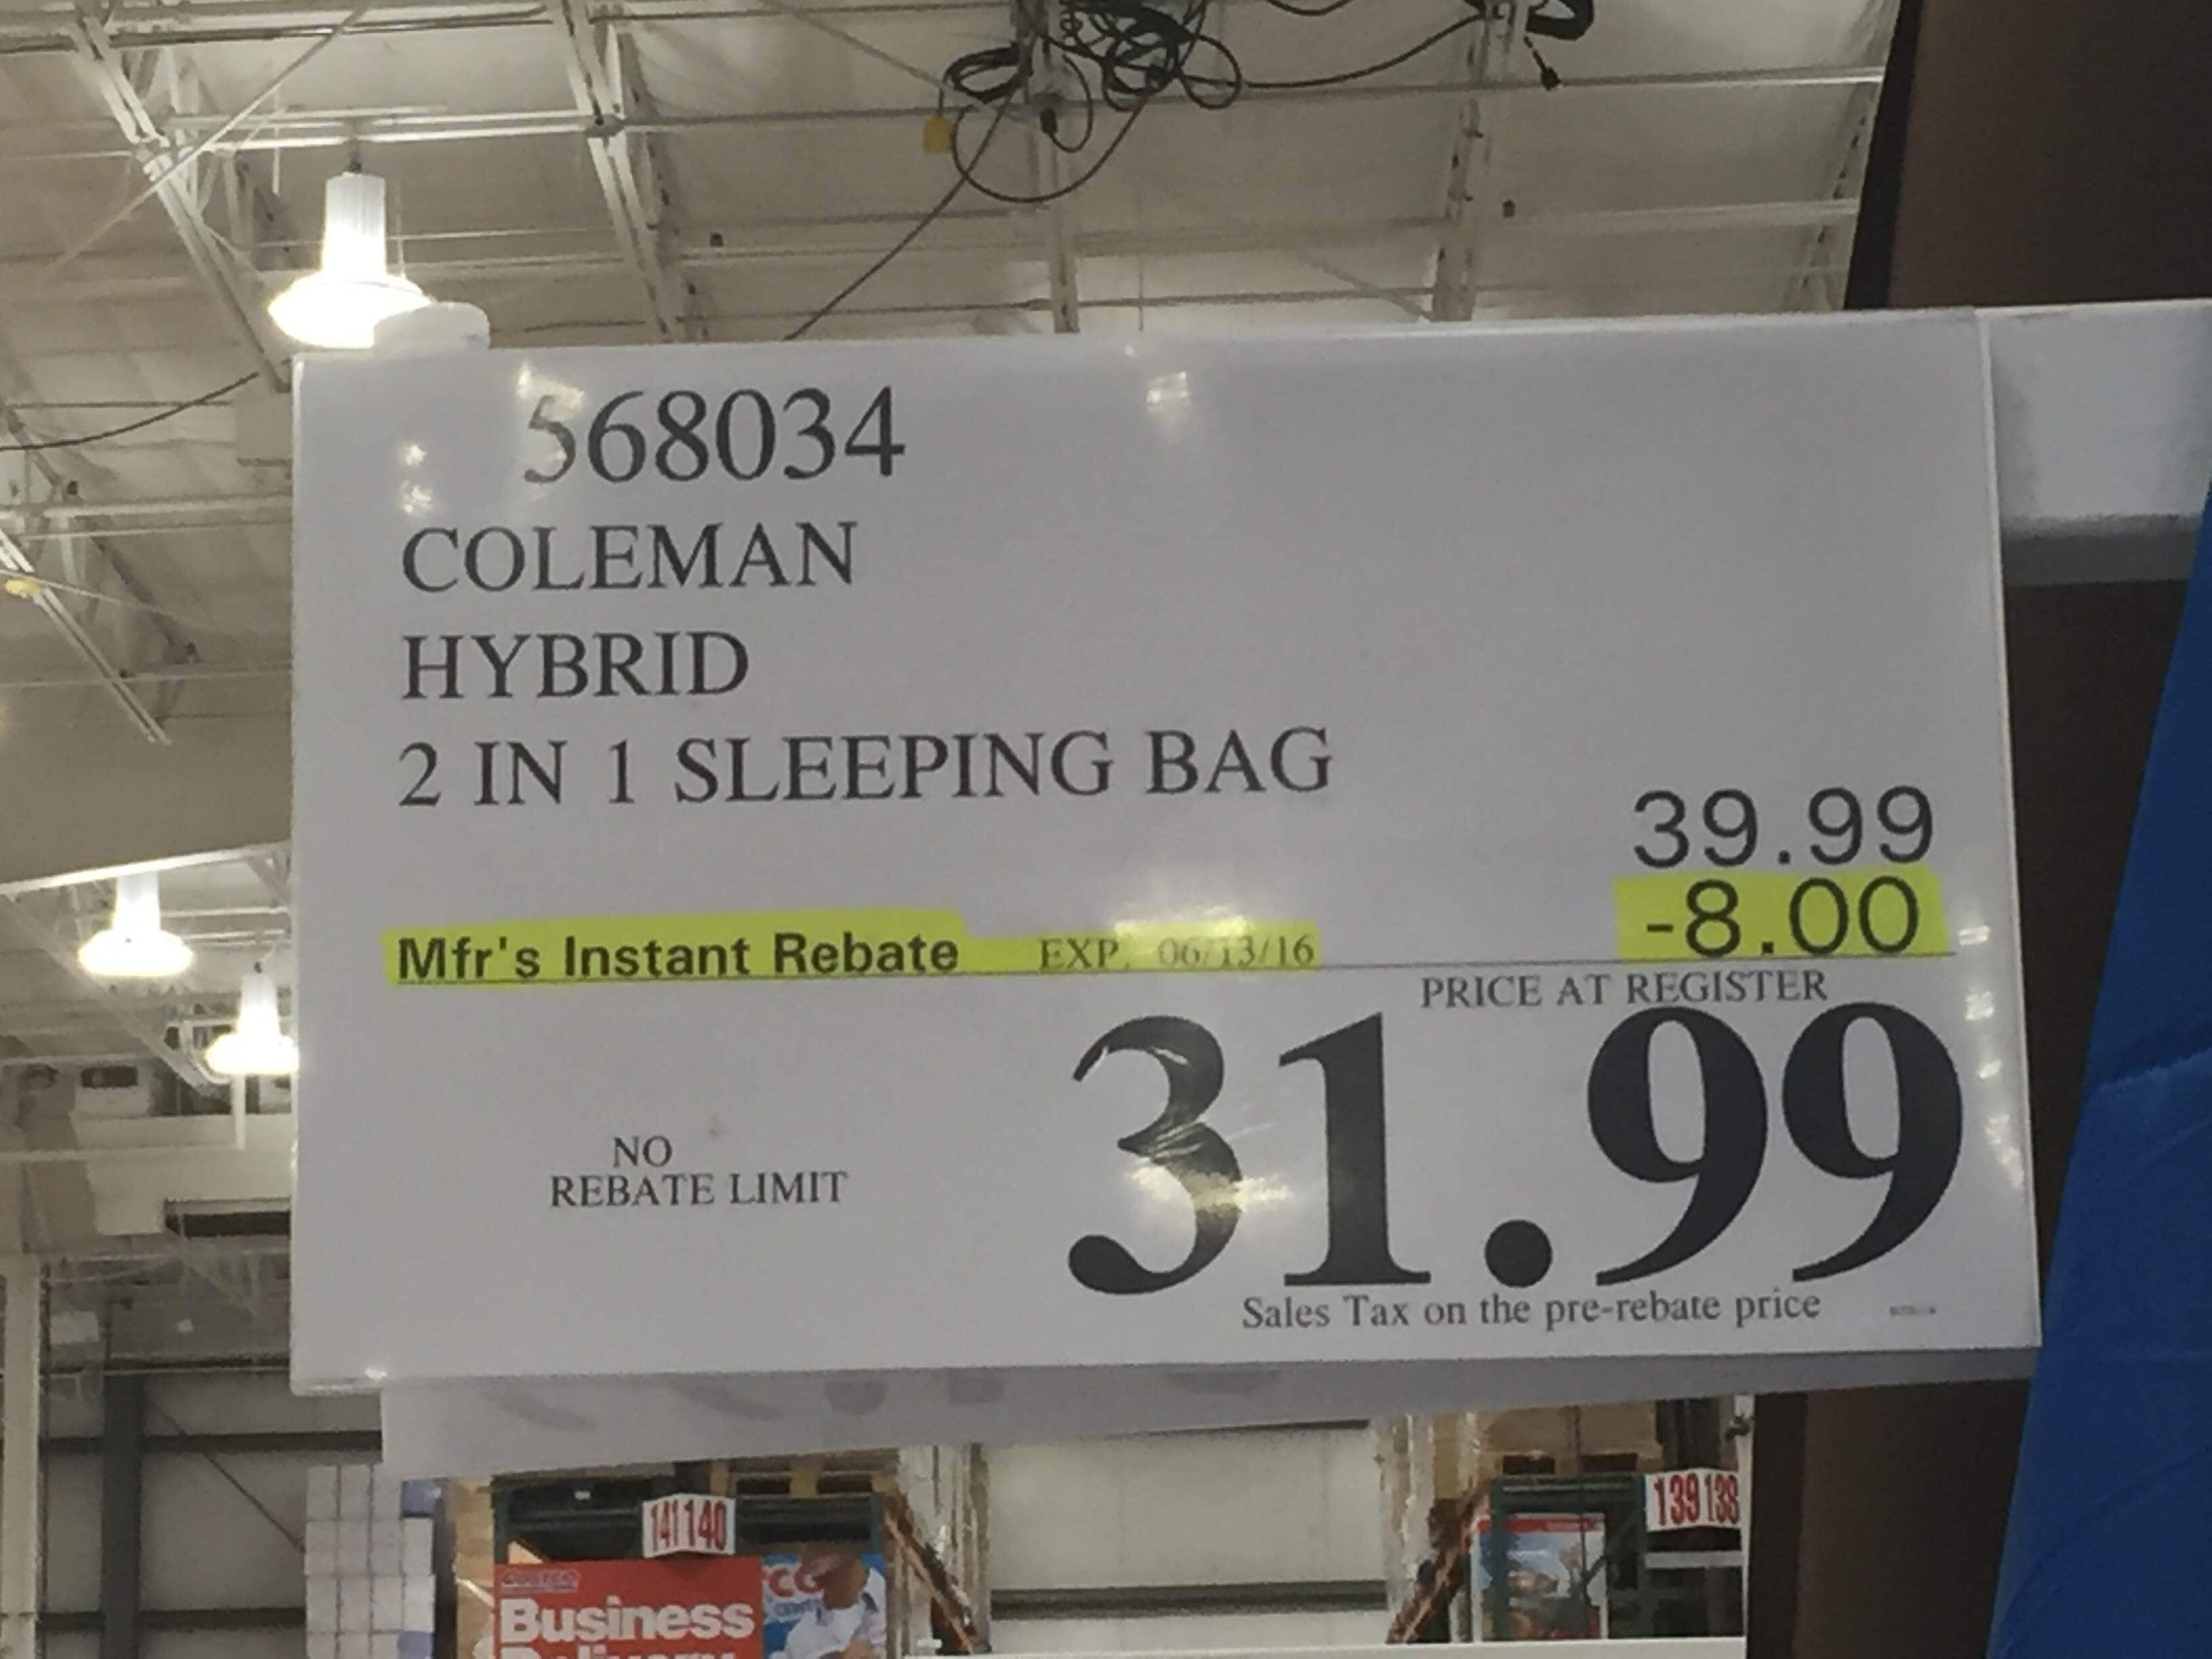 Costco @ Coleman hybrid 2 in 1 sleeping bag for $32